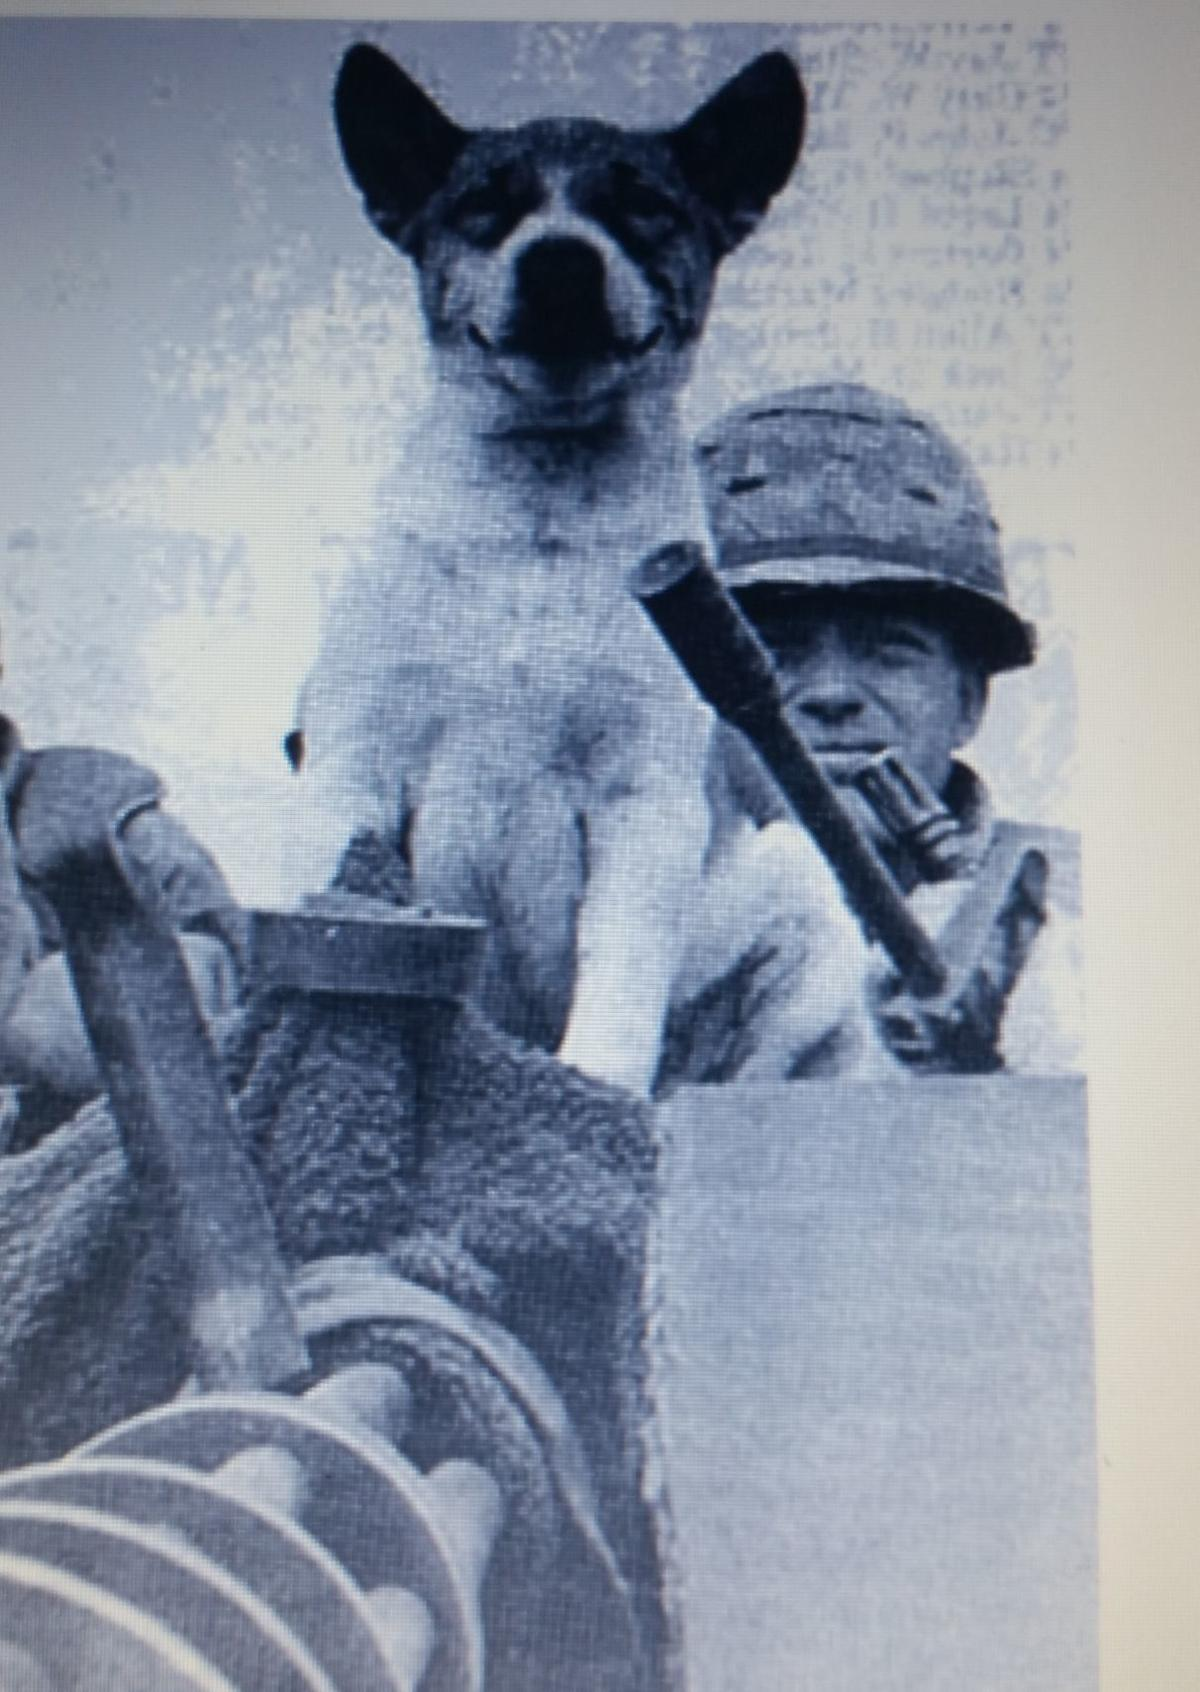 Keith Bishop in Vietnam with a dog named Sue and a mini gun. This photo was featured in the Stars and Stripes magazine.jpg